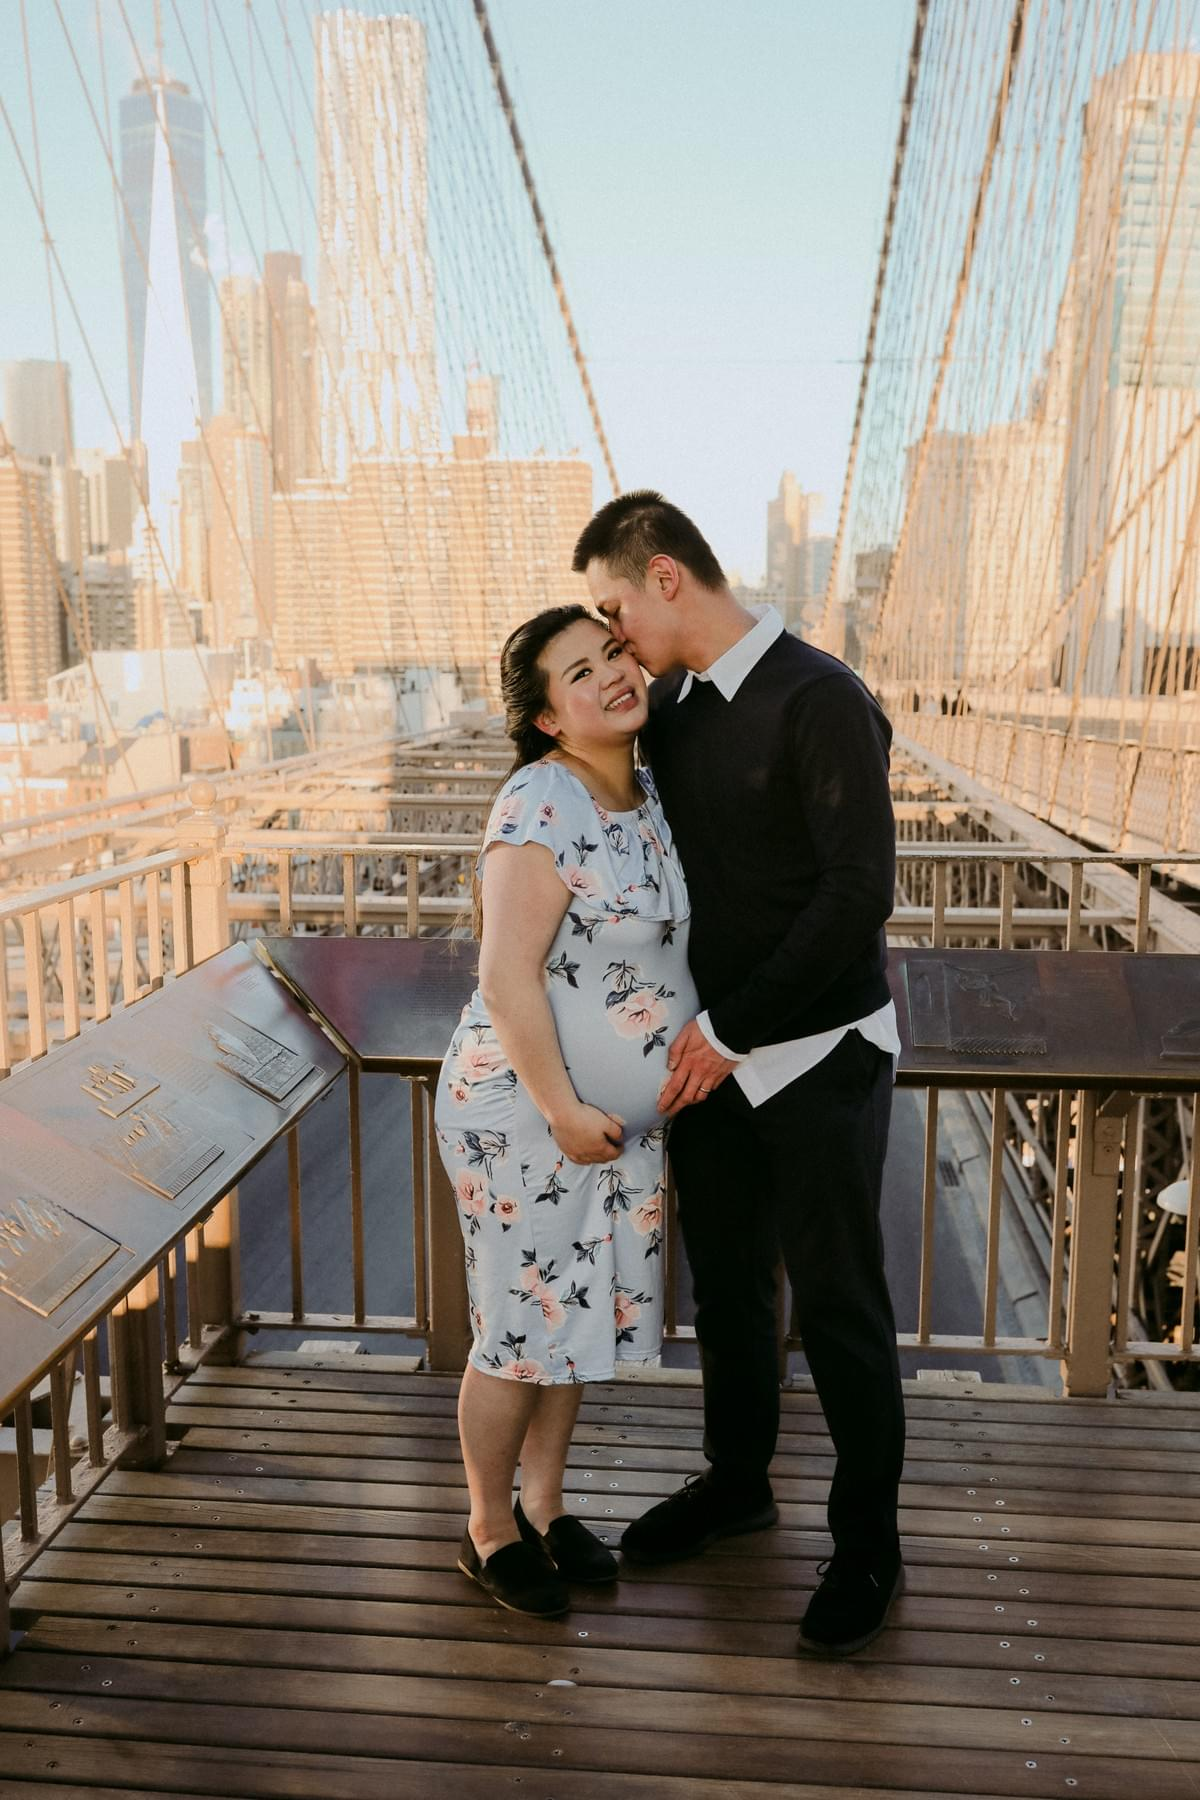 孕婦寫真 / 纽约孕妇写真 / New York Maternity Photography / Dumbo Brooklyn Maternity Photo Shoot / 纽约摄影师